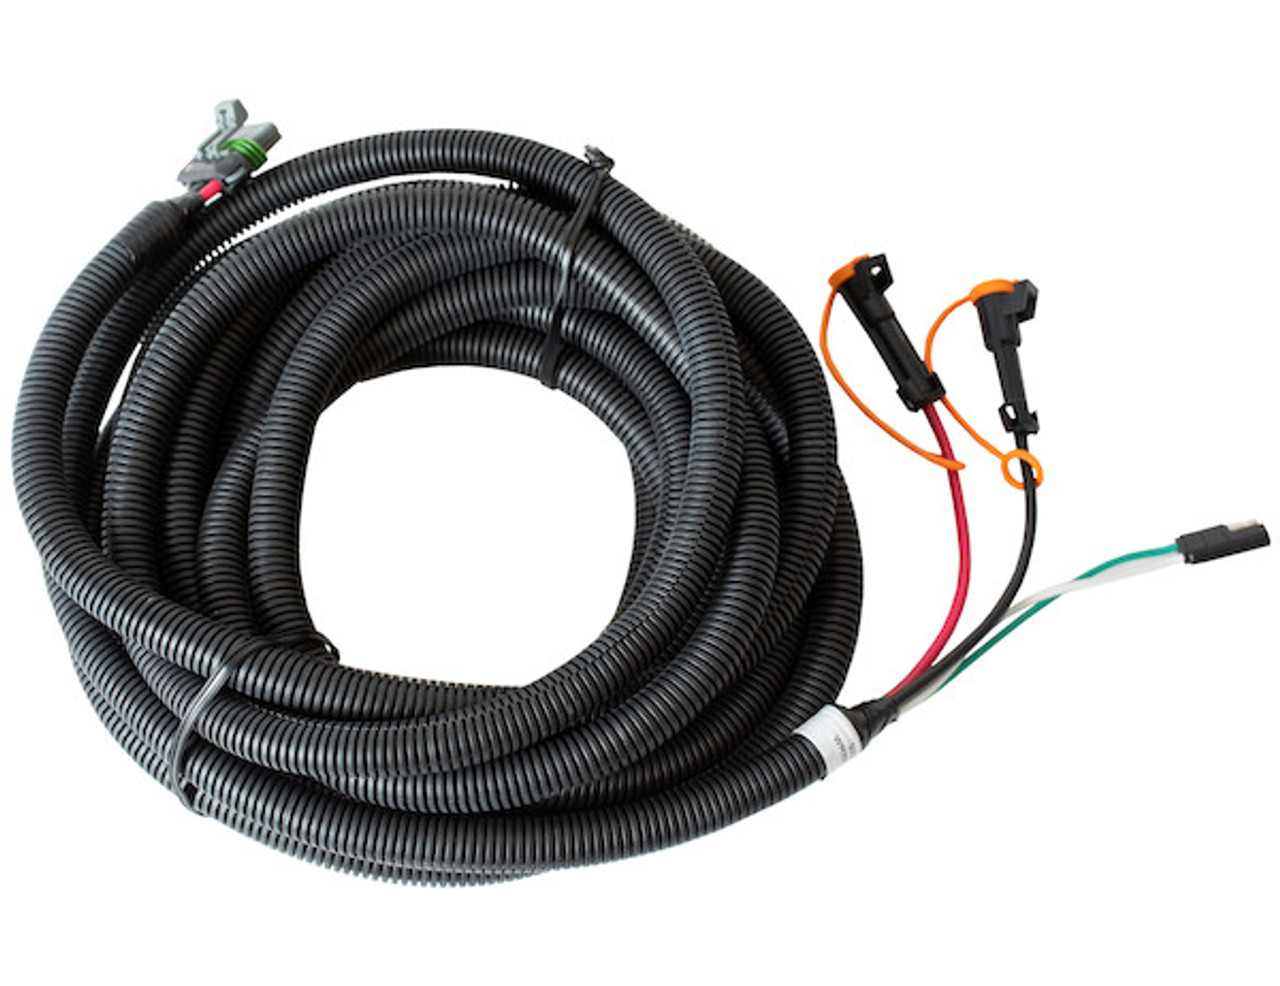 3008620 Replacement TGS Wiring Harness WITH VIBRATOR CONNECTION for SaltDogg Tailgate Salt Spreader (3008620)